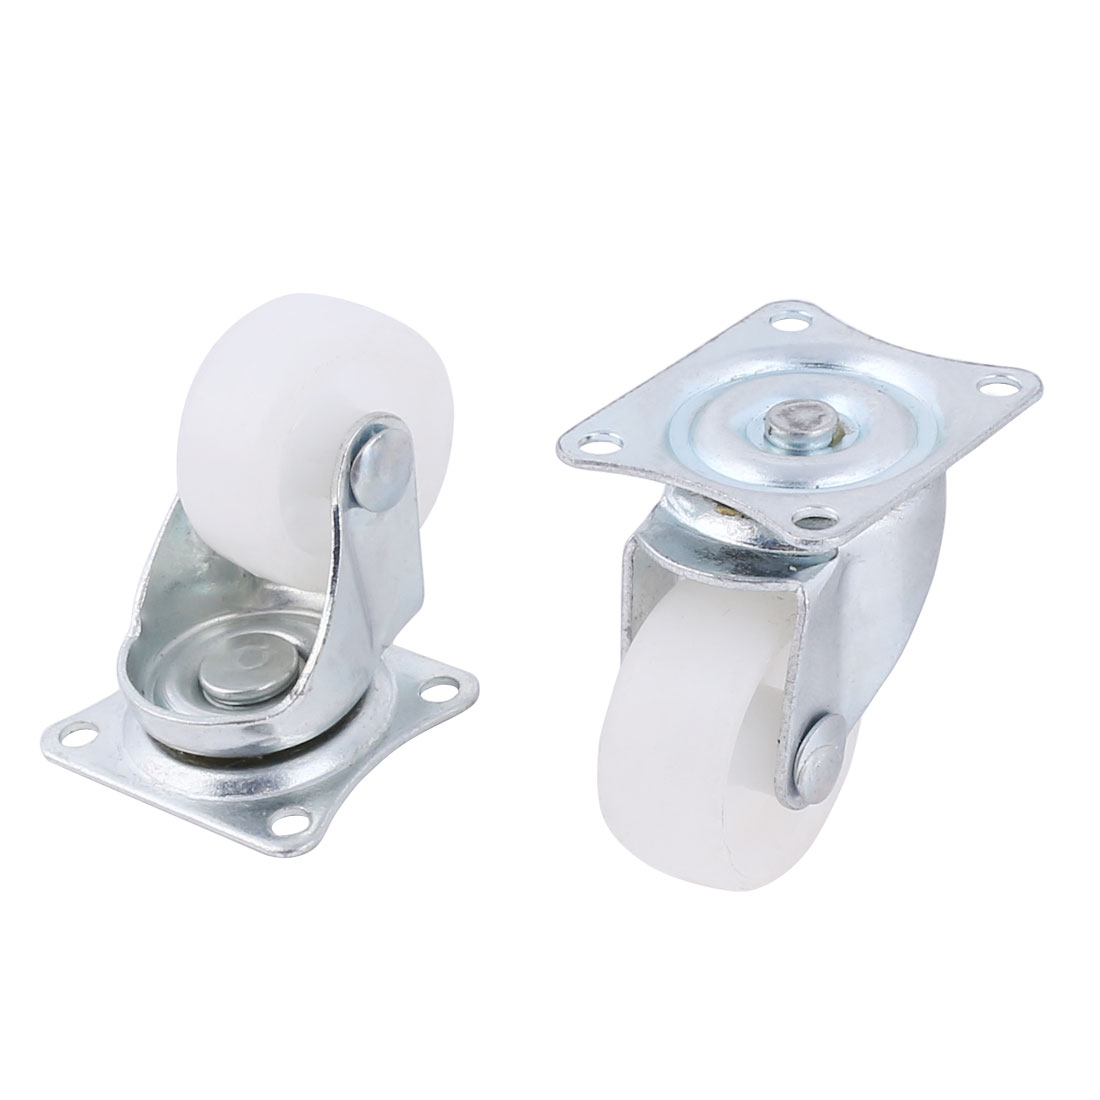 "Industrial Trolley Plastic Wheel 1.2"" Dia Swivel Top Plate Light Duty Caster"